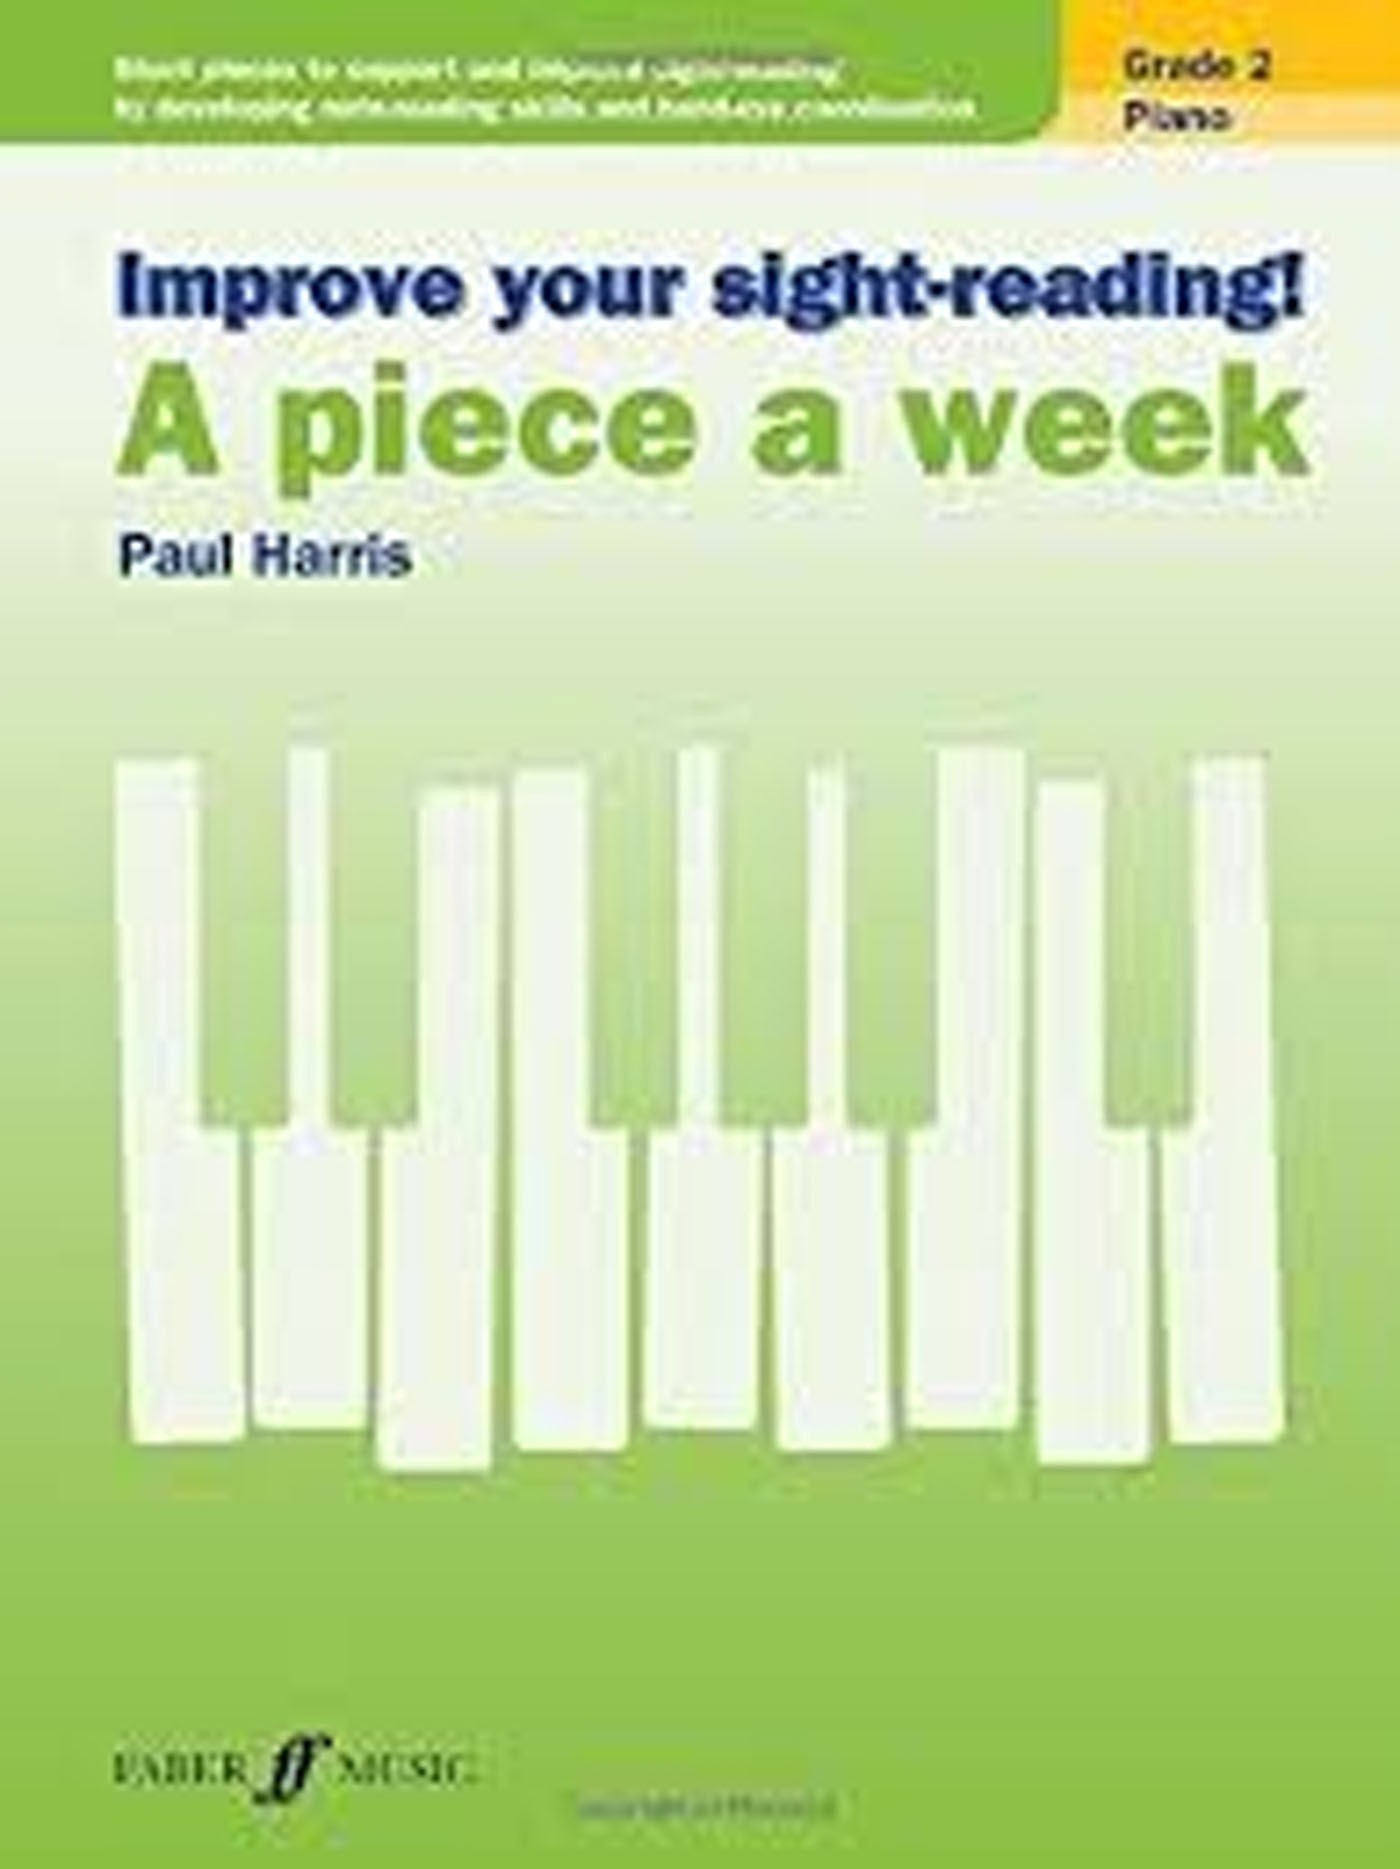 Improve Your Sight-Reading Book A Piece A Week Grade 2 Piano Paul Harris S158